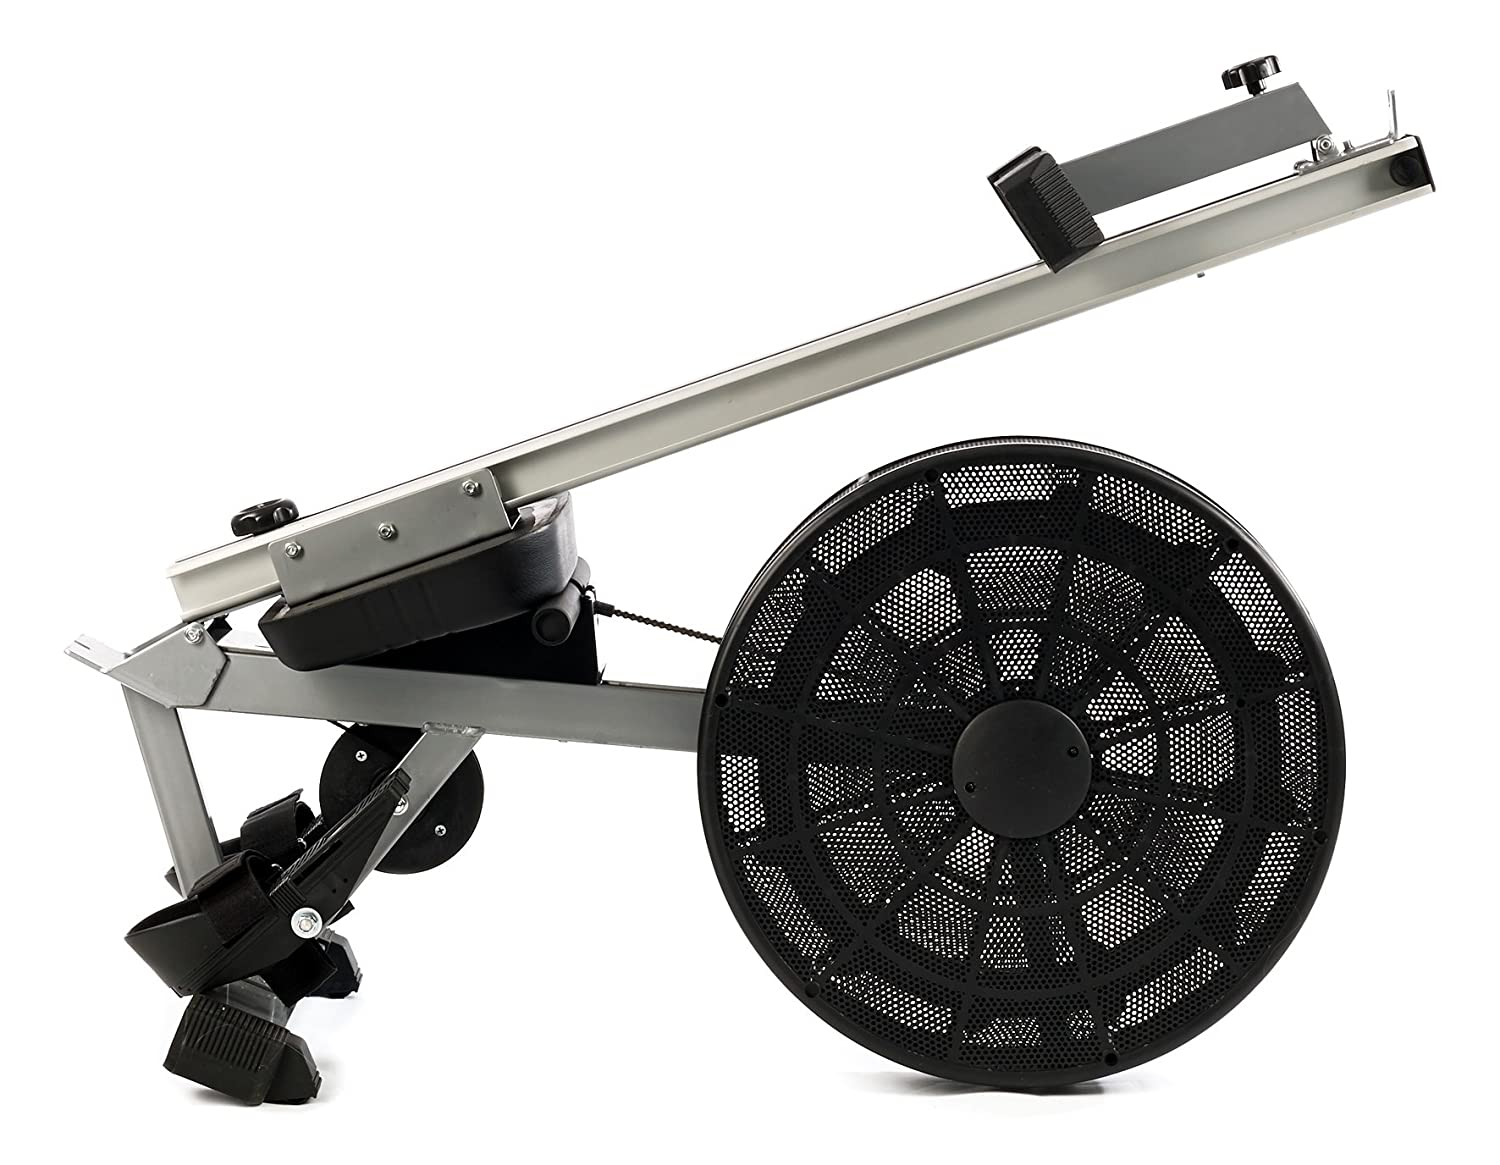 v-fit rowing machine reviews